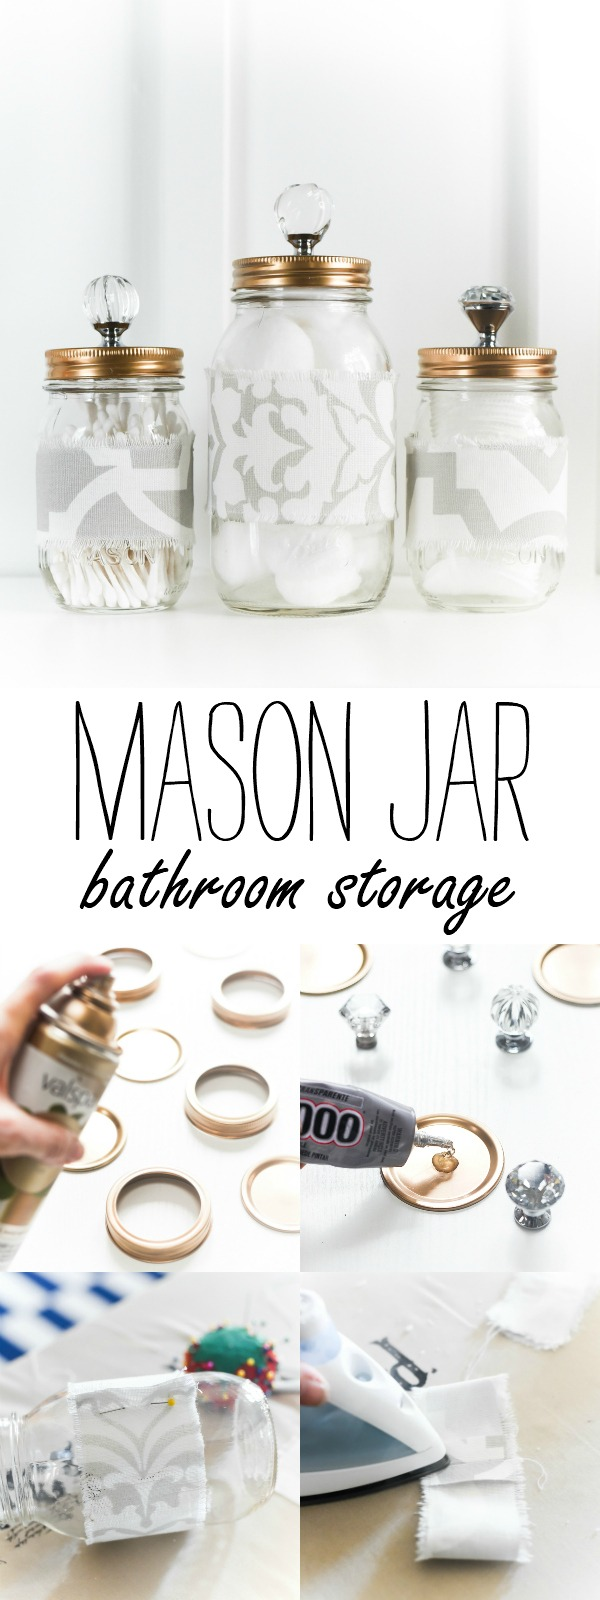 Mason Jar Cozies Bathroom Storage - Mason Jar Bathroom Storage - Mason Jars with Gold Lids Crystal Glass Knobs